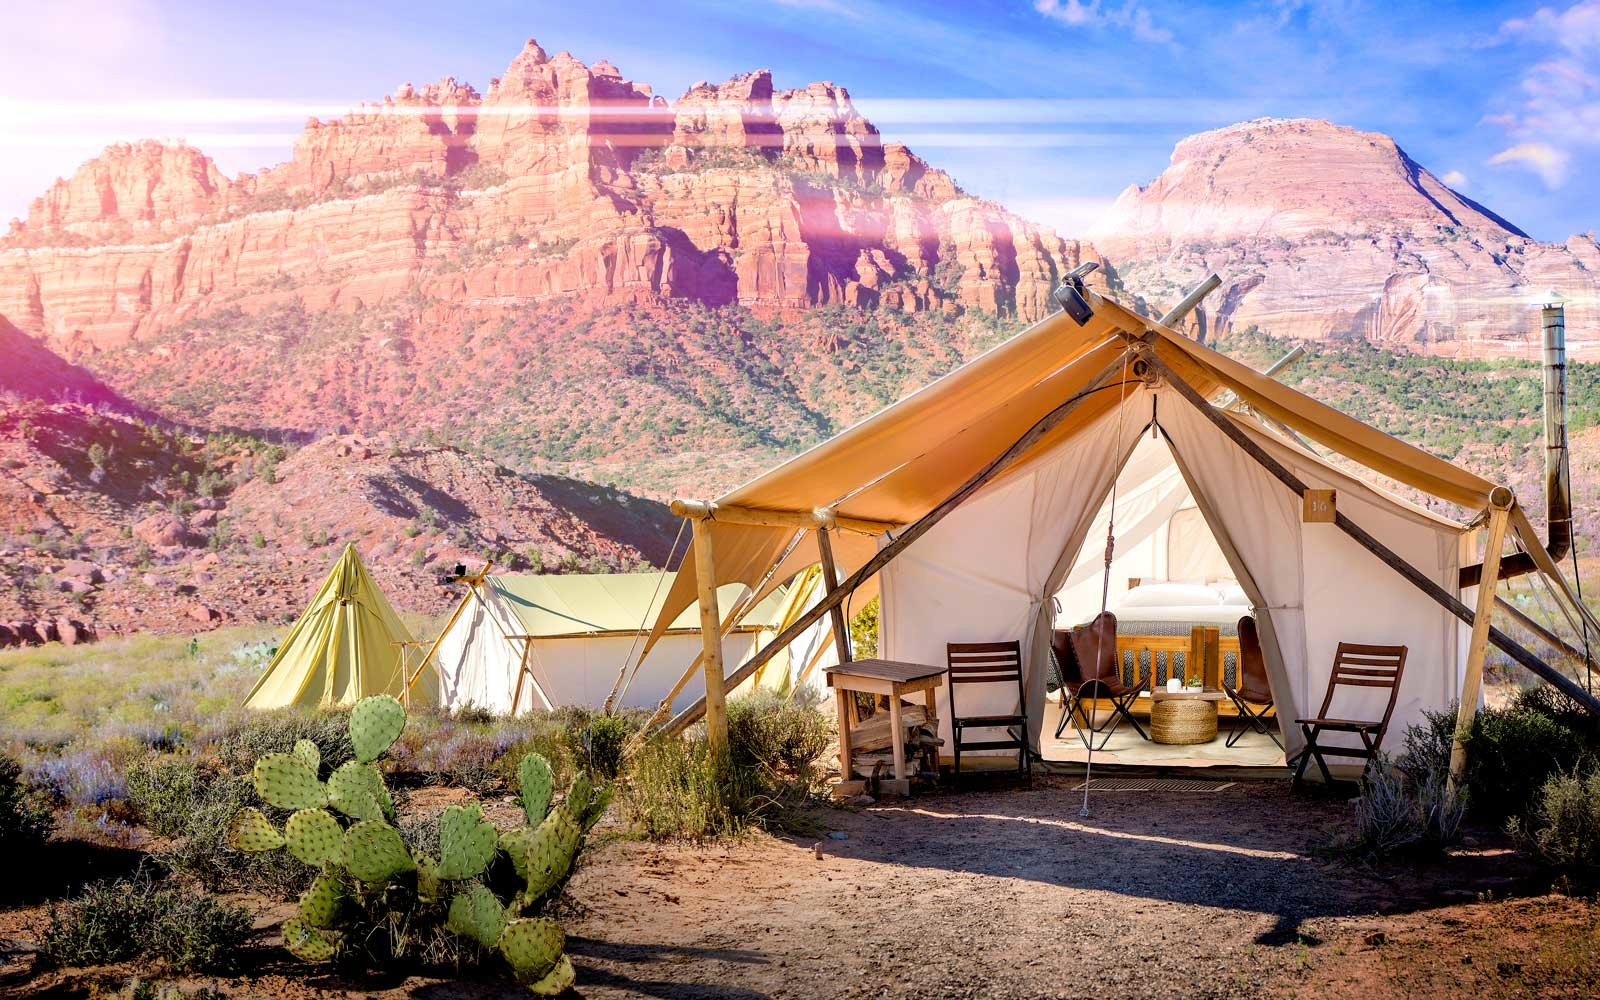 Glamping in Zion National Park